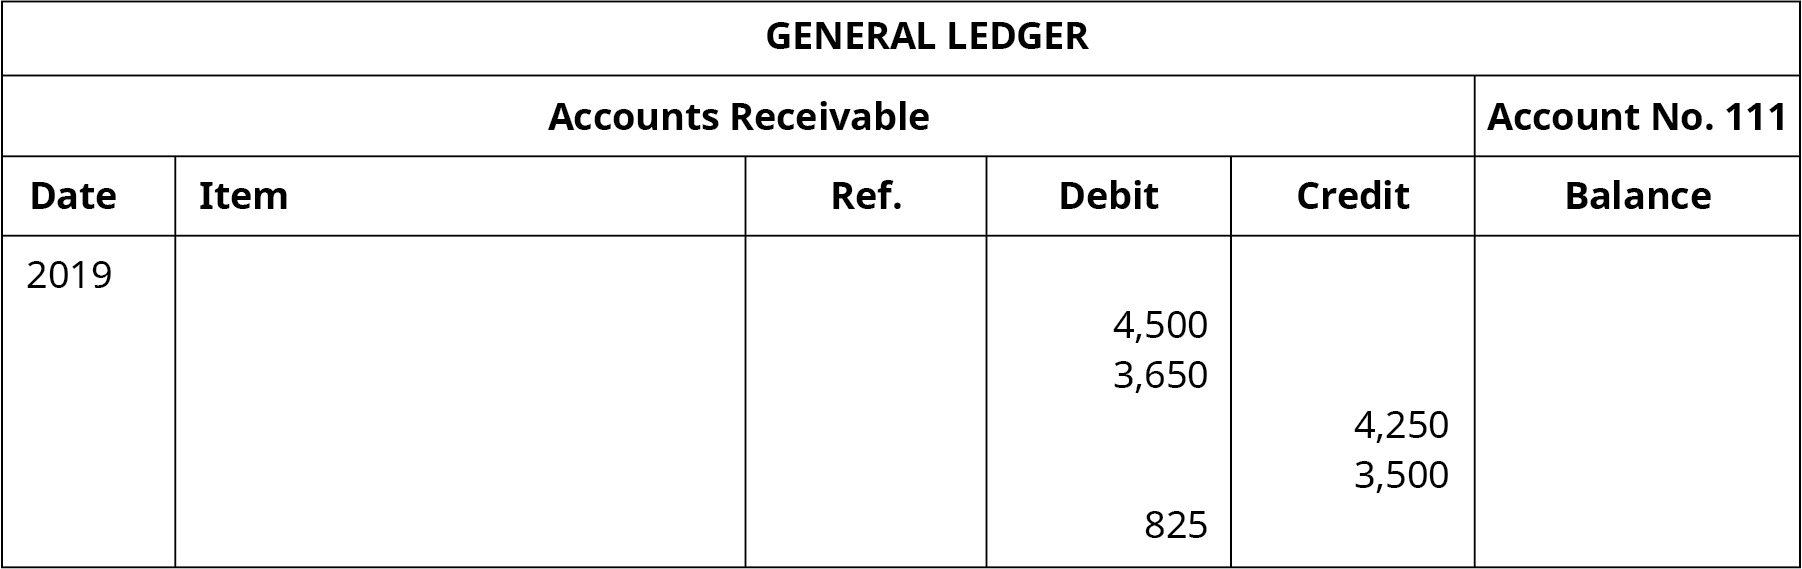 "A General Ledger titled ""Accounts Receivable No. 111"" with six columns. Date: 2019. Debt column entries: 4,500, 3,650, 825. Credit column entries: 4,250, 3,500."